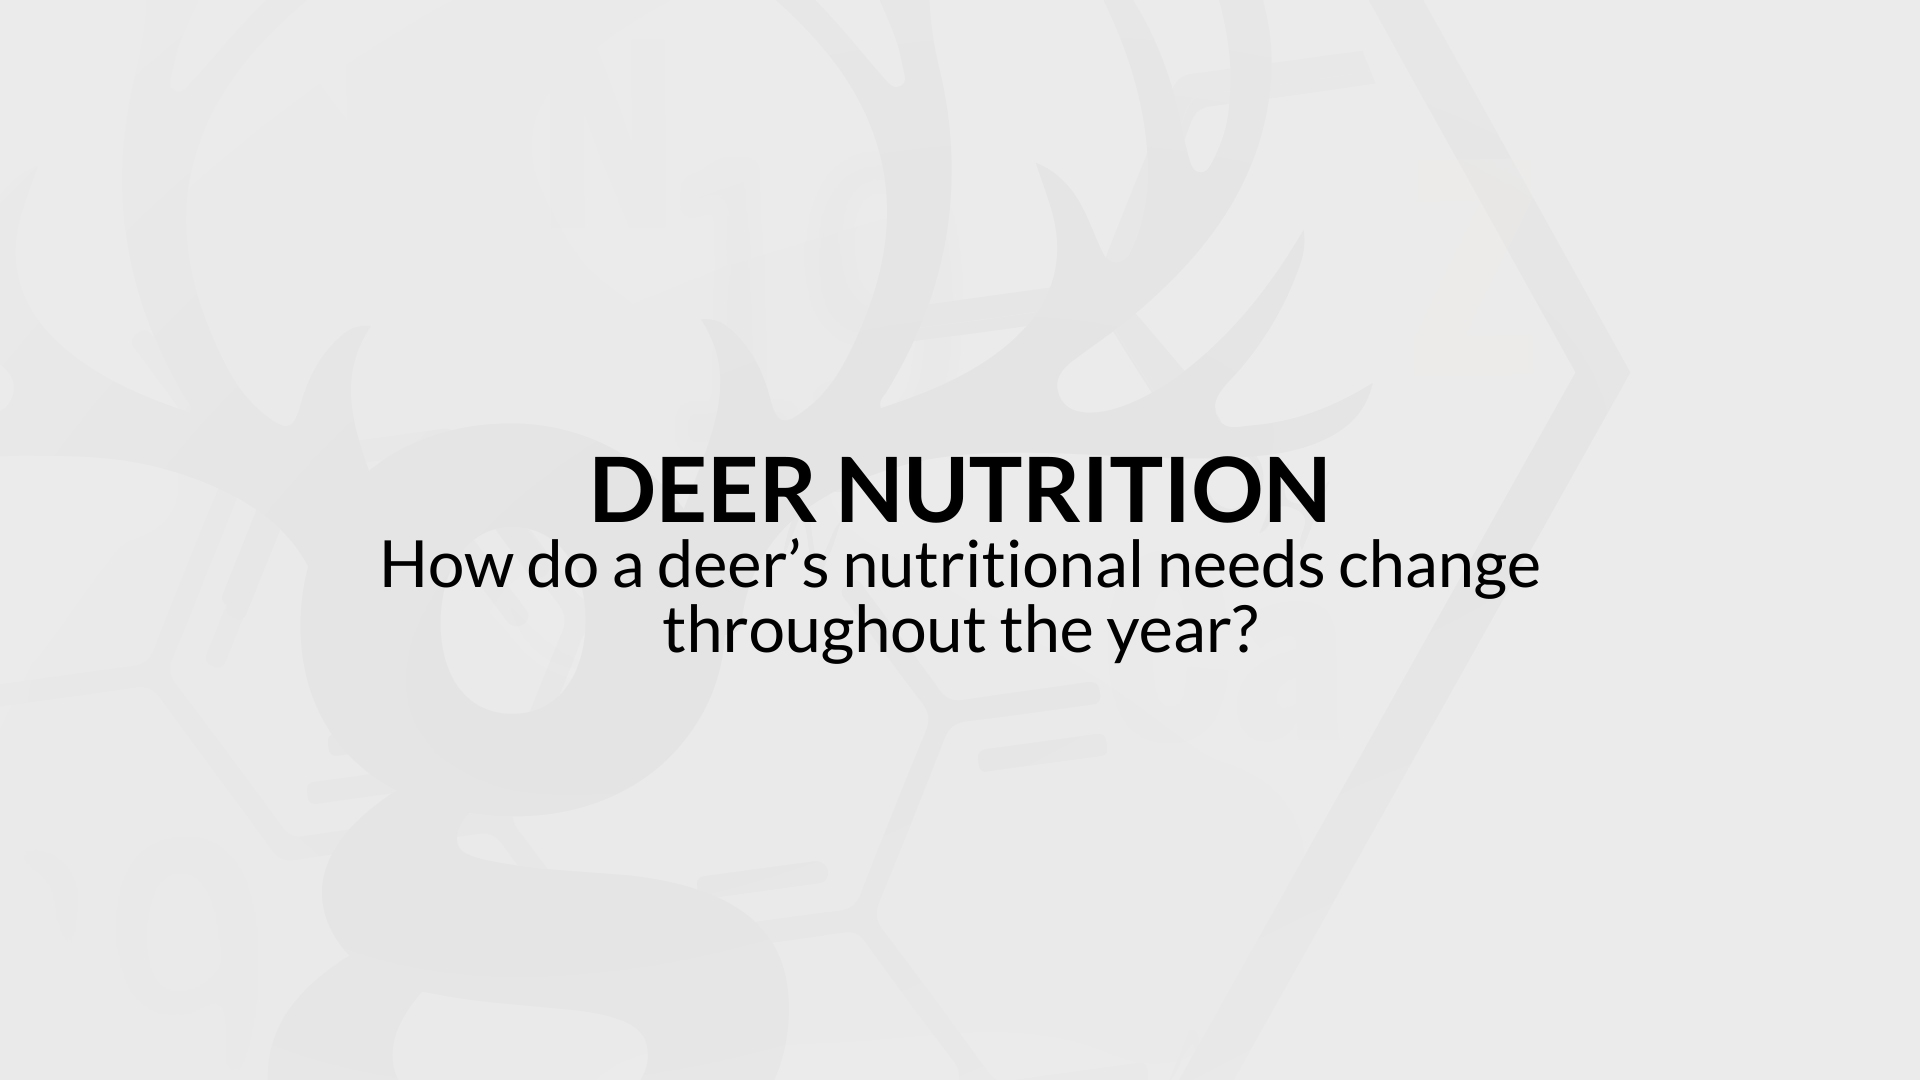 How do a deer's nutritional needs change throughout the year?